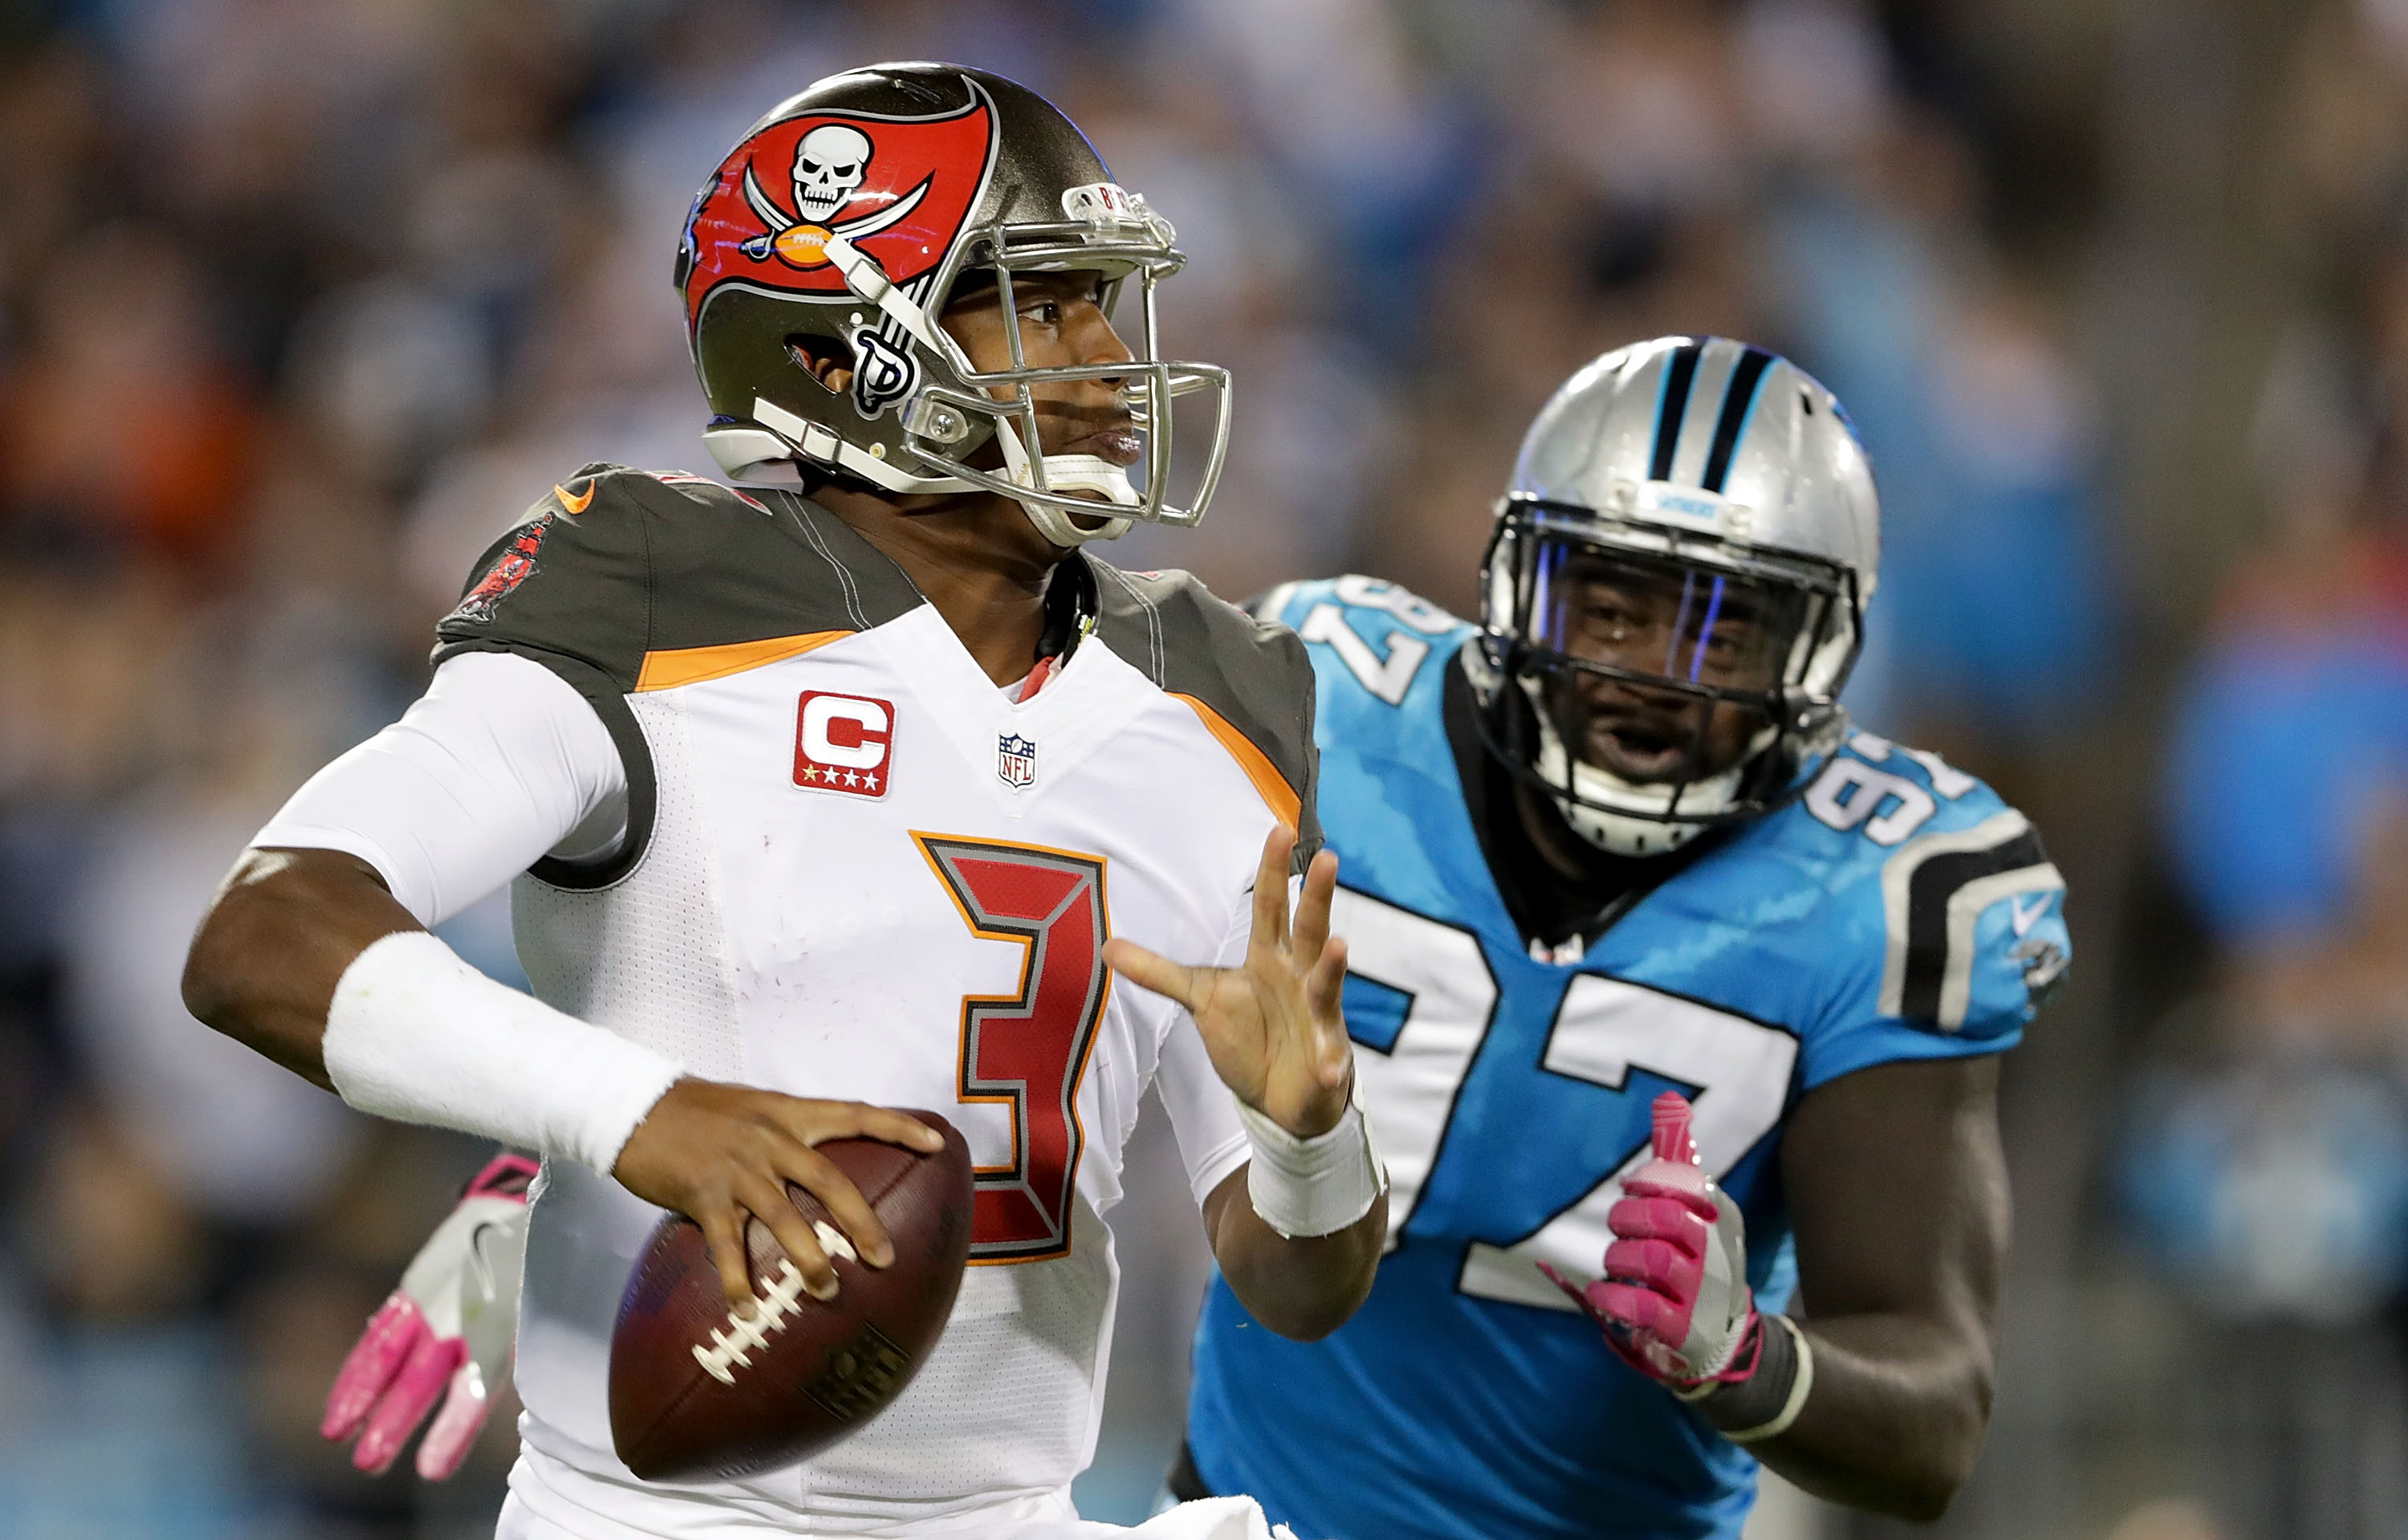 Mario Addison #97 of the Carolina Panthers pursues Jameis Winston #3 of the Tampa Bay Buccaneers in the 2nd half during their game at Bank of America Stadium on October 10, 2016 in Charlotte, North Carolina. (Photo by Streeter Lecka/Getty Images)